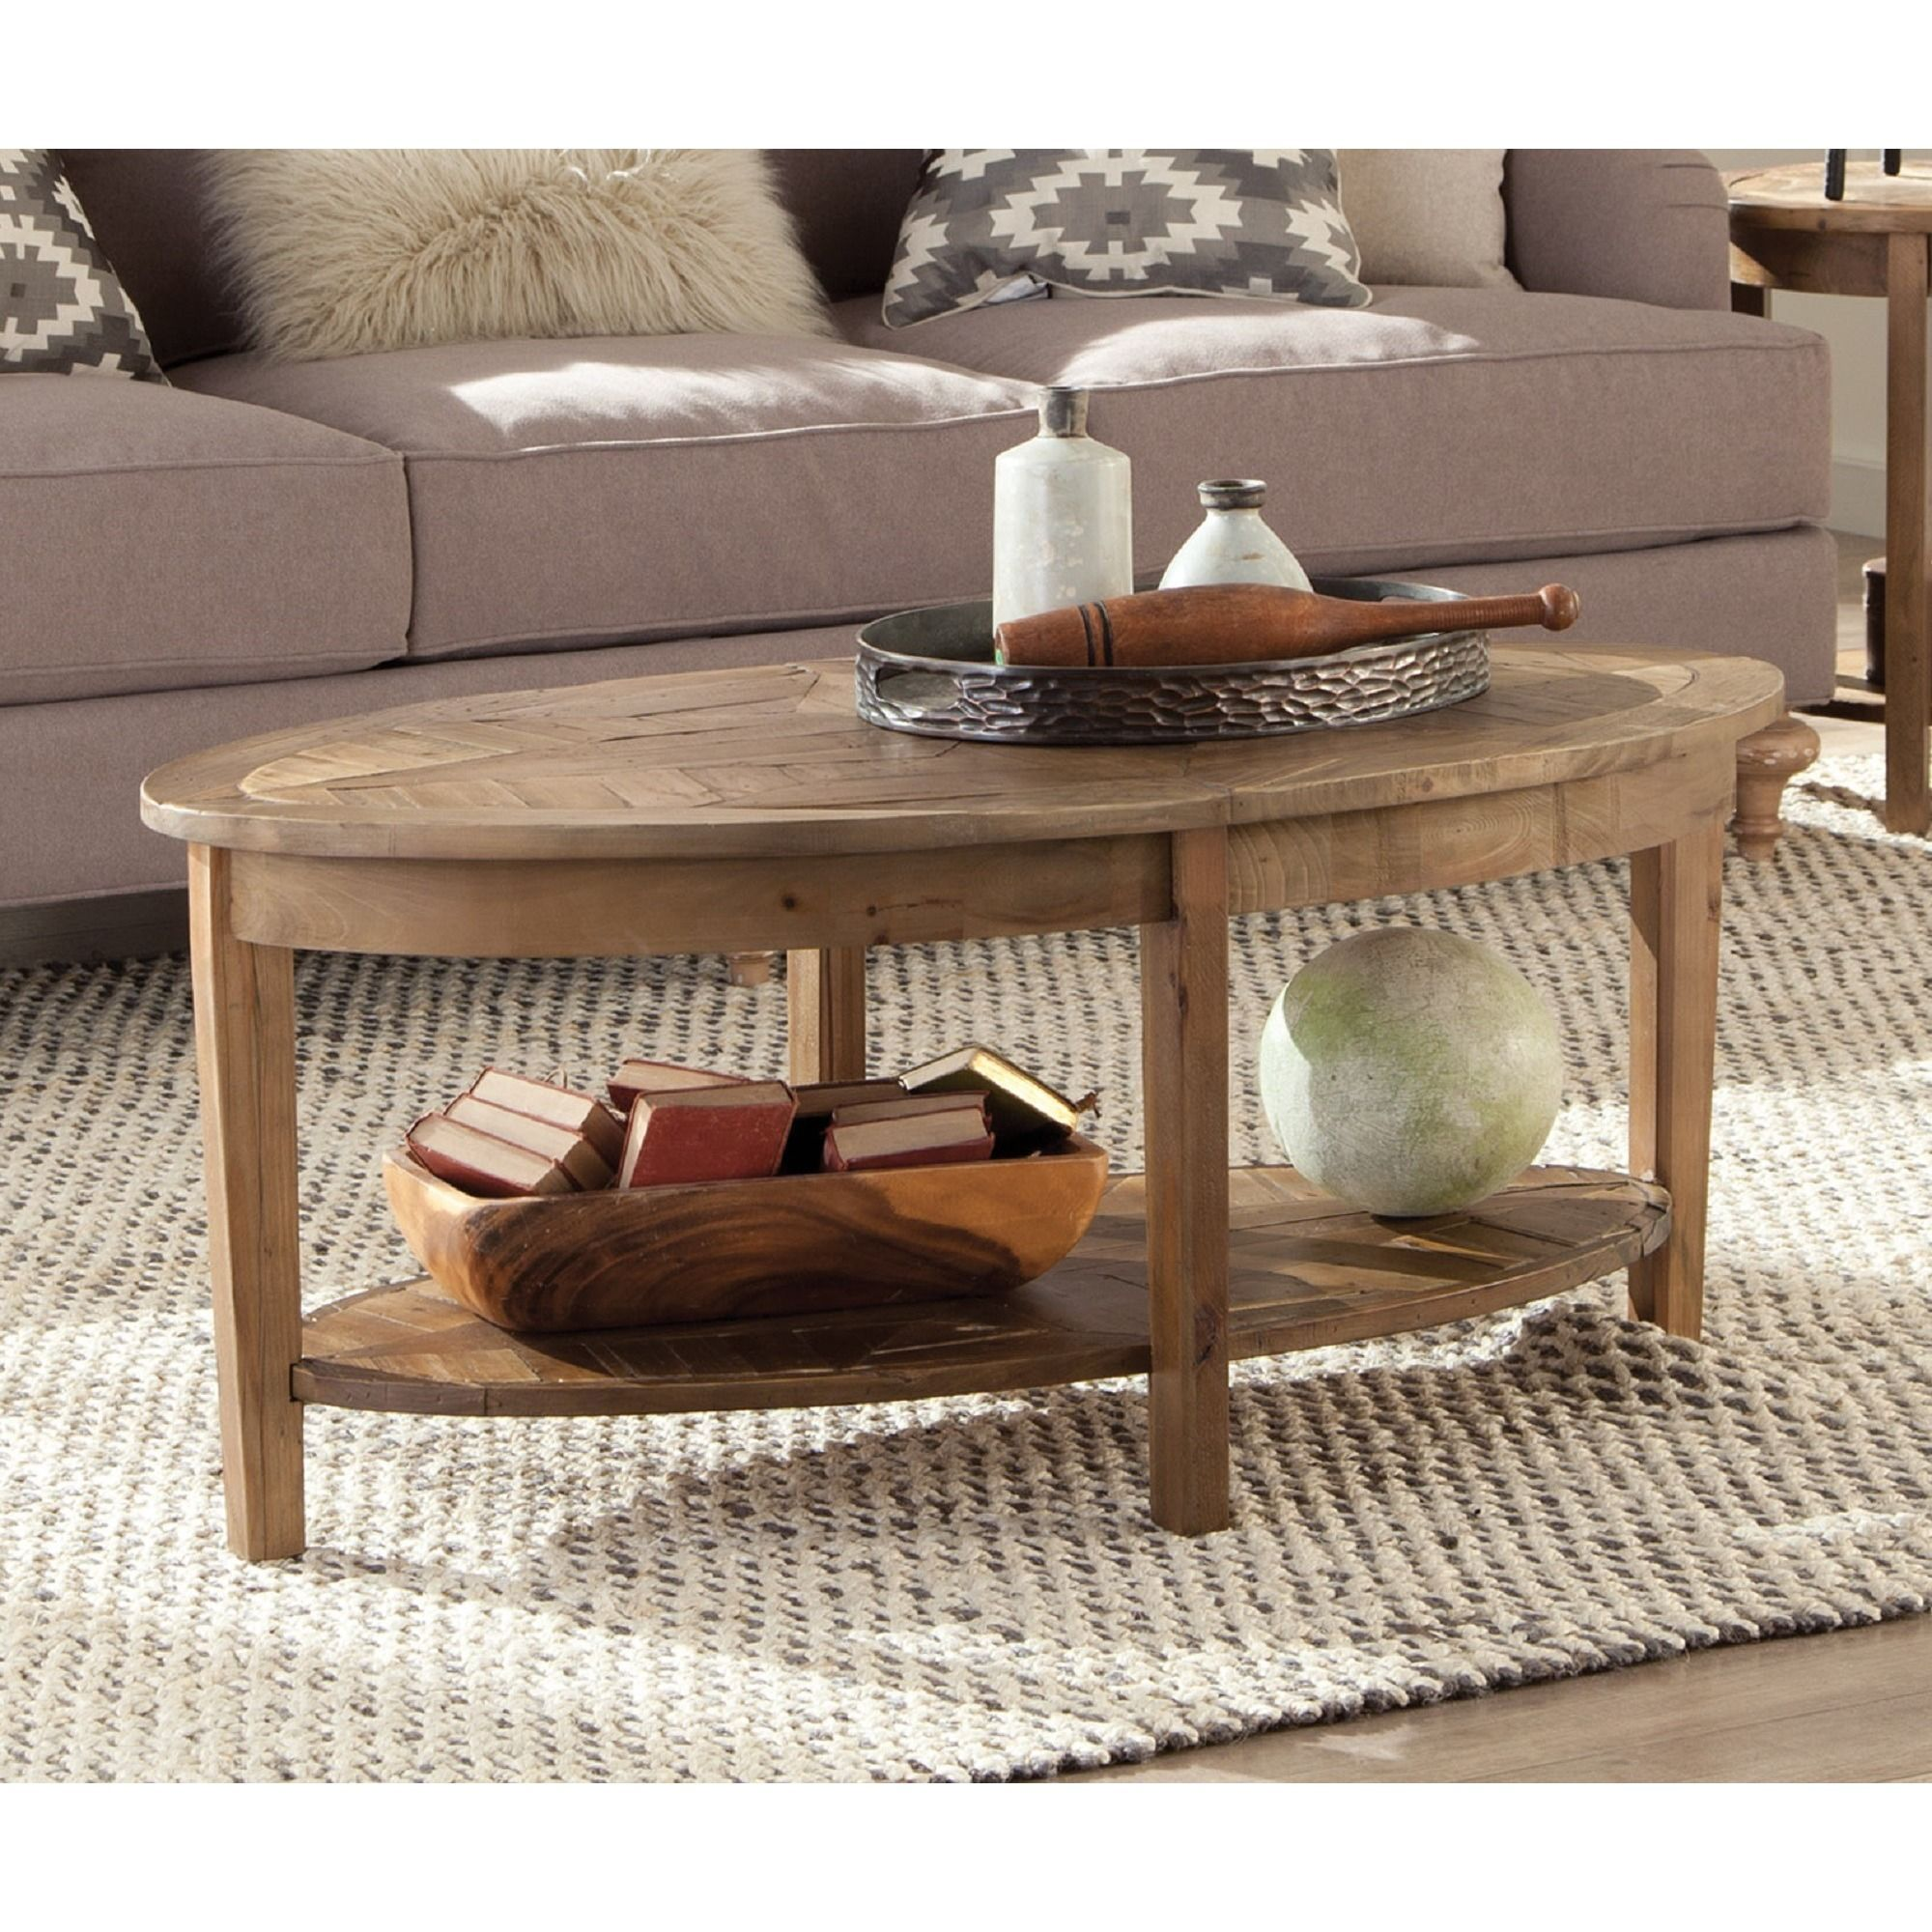 Overstock Com Online Shopping Bedding Furniture Electronics Jewelry Clothing More Oval Coffee Tables Oval Wood Coffee Table Coffee Table With Storage [ 2000 x 2000 Pixel ]